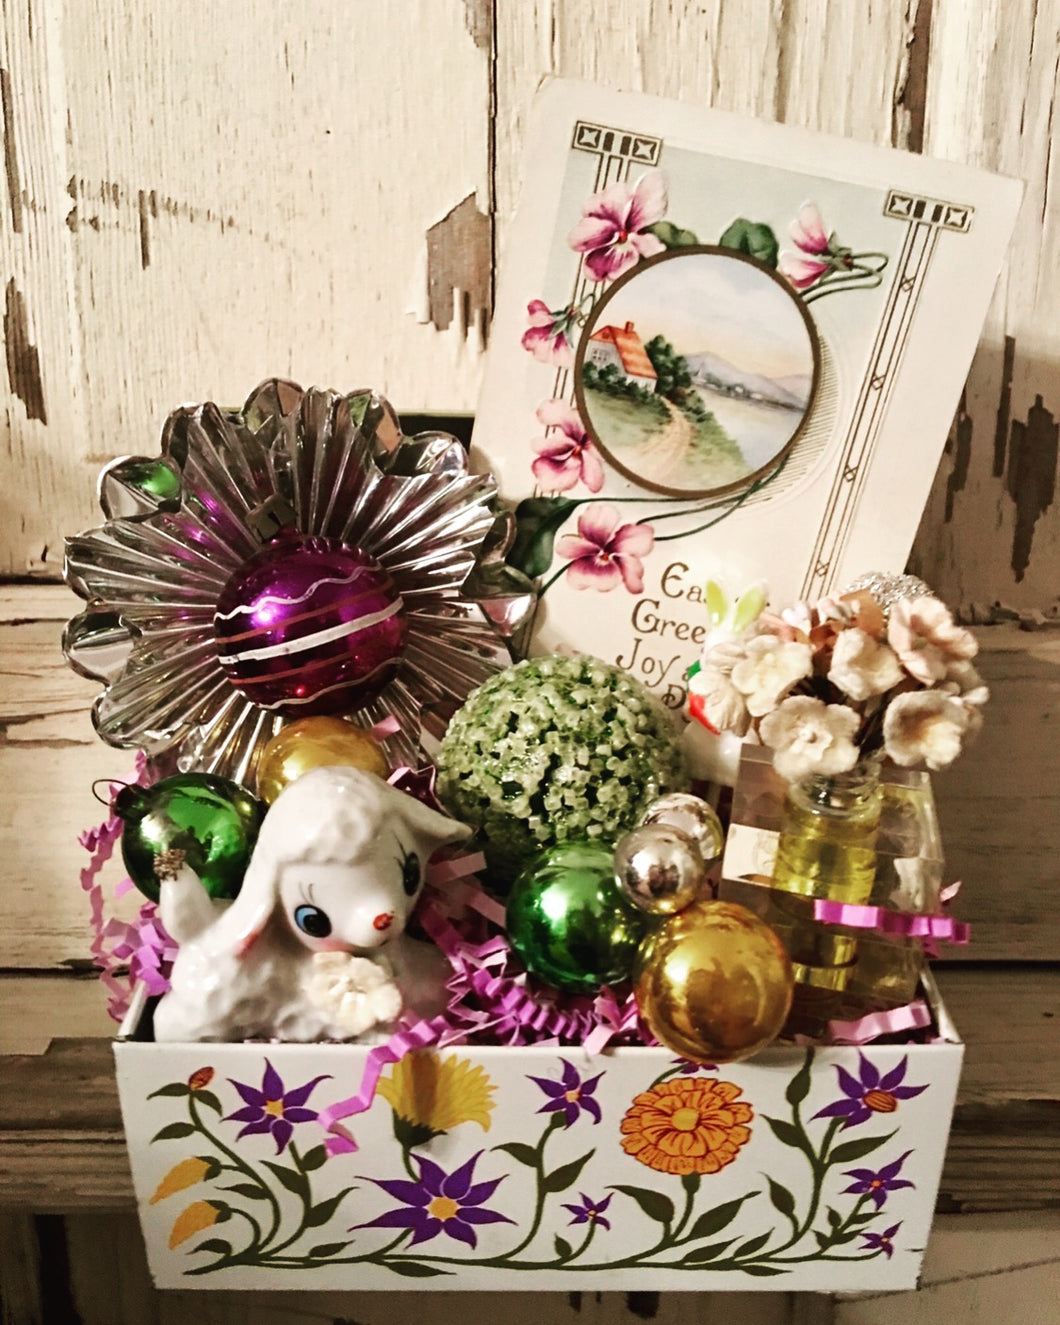 Vintage Purple Flowered Recipe Box - Decorated For Easter!